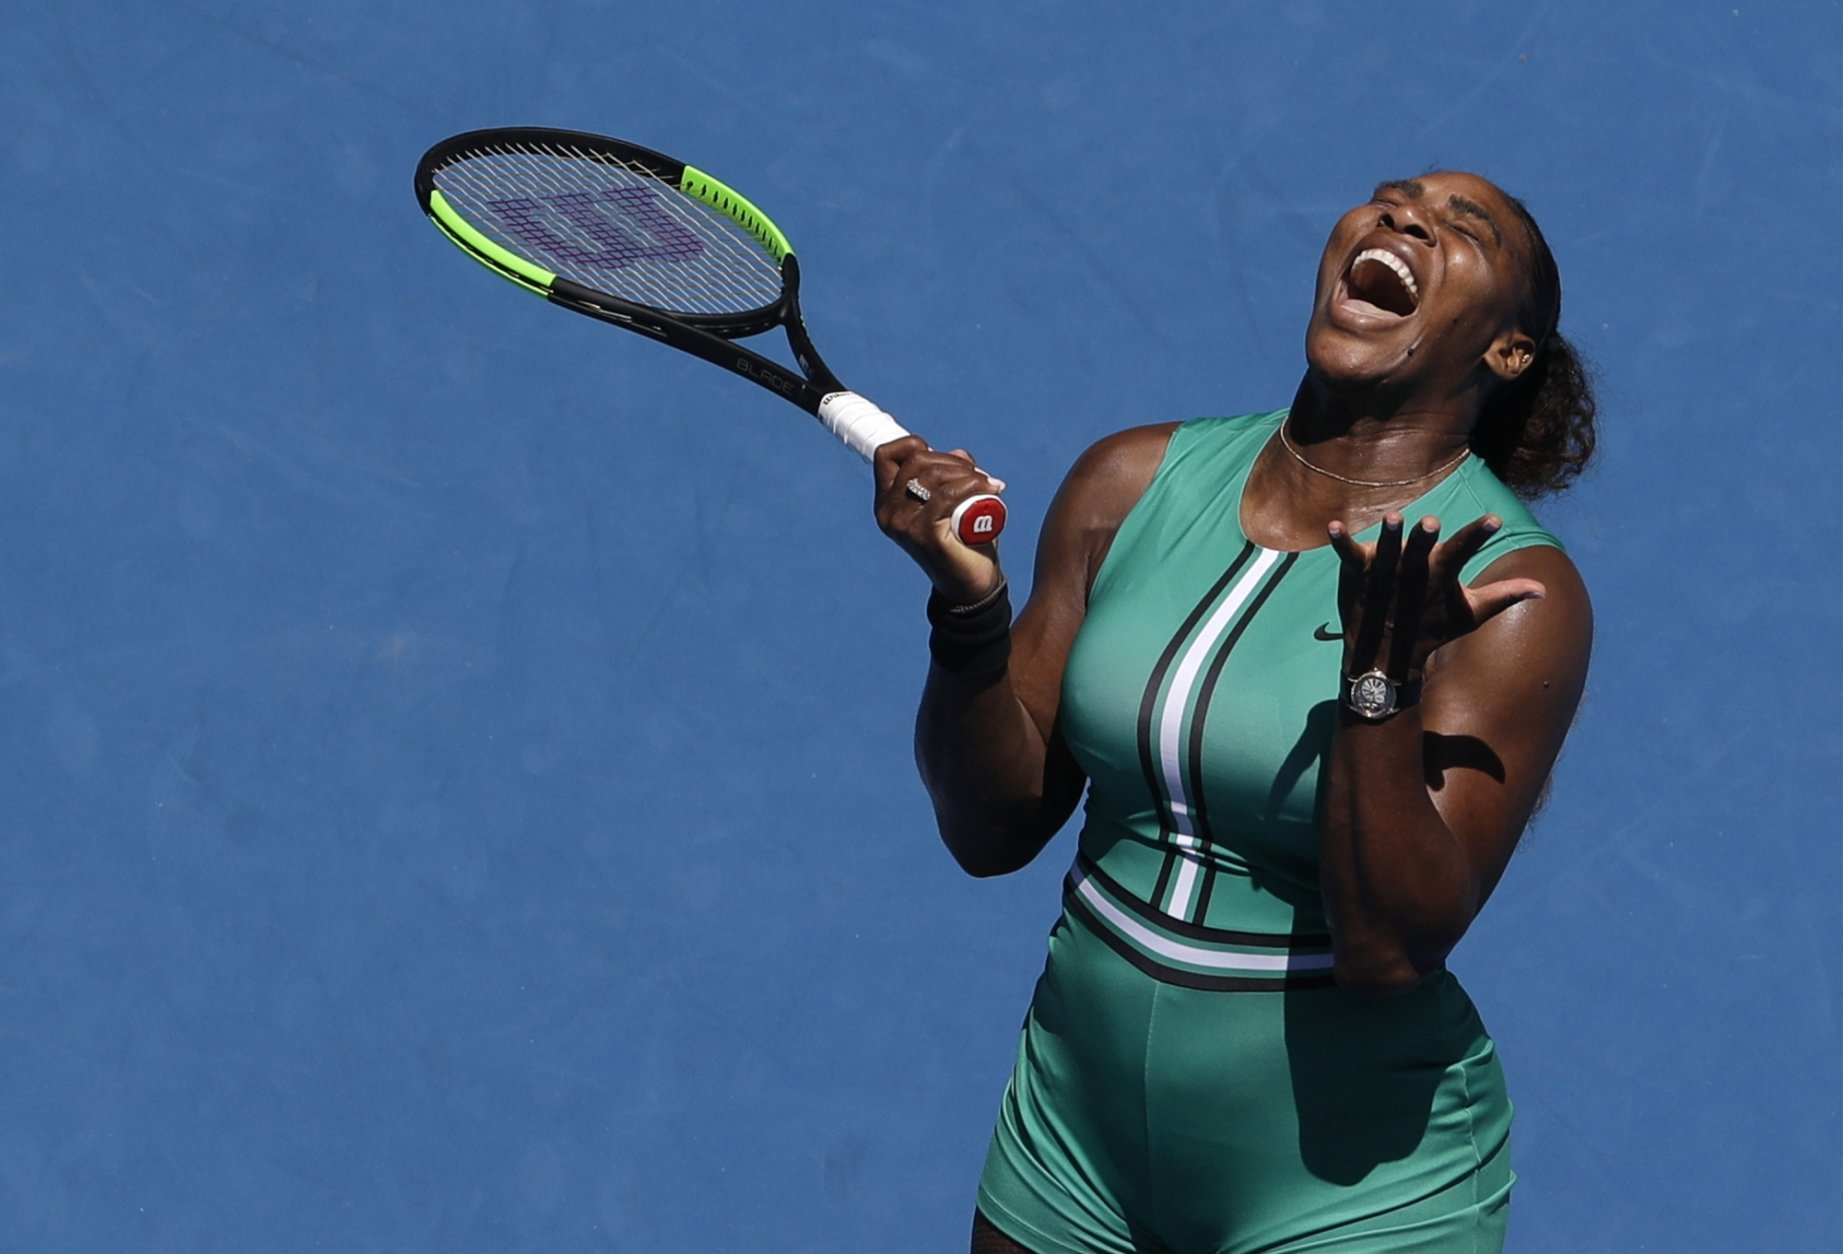 United States' Serena Williams reacts after losing a point to Karolina Pliskova of the Czech Republic during their quarterfinal match at the Australian Open tennis championships in Melbourne, Australia, Wednesday, Jan. 23, 2019. (AP Photo/Mark Schiefelbein)